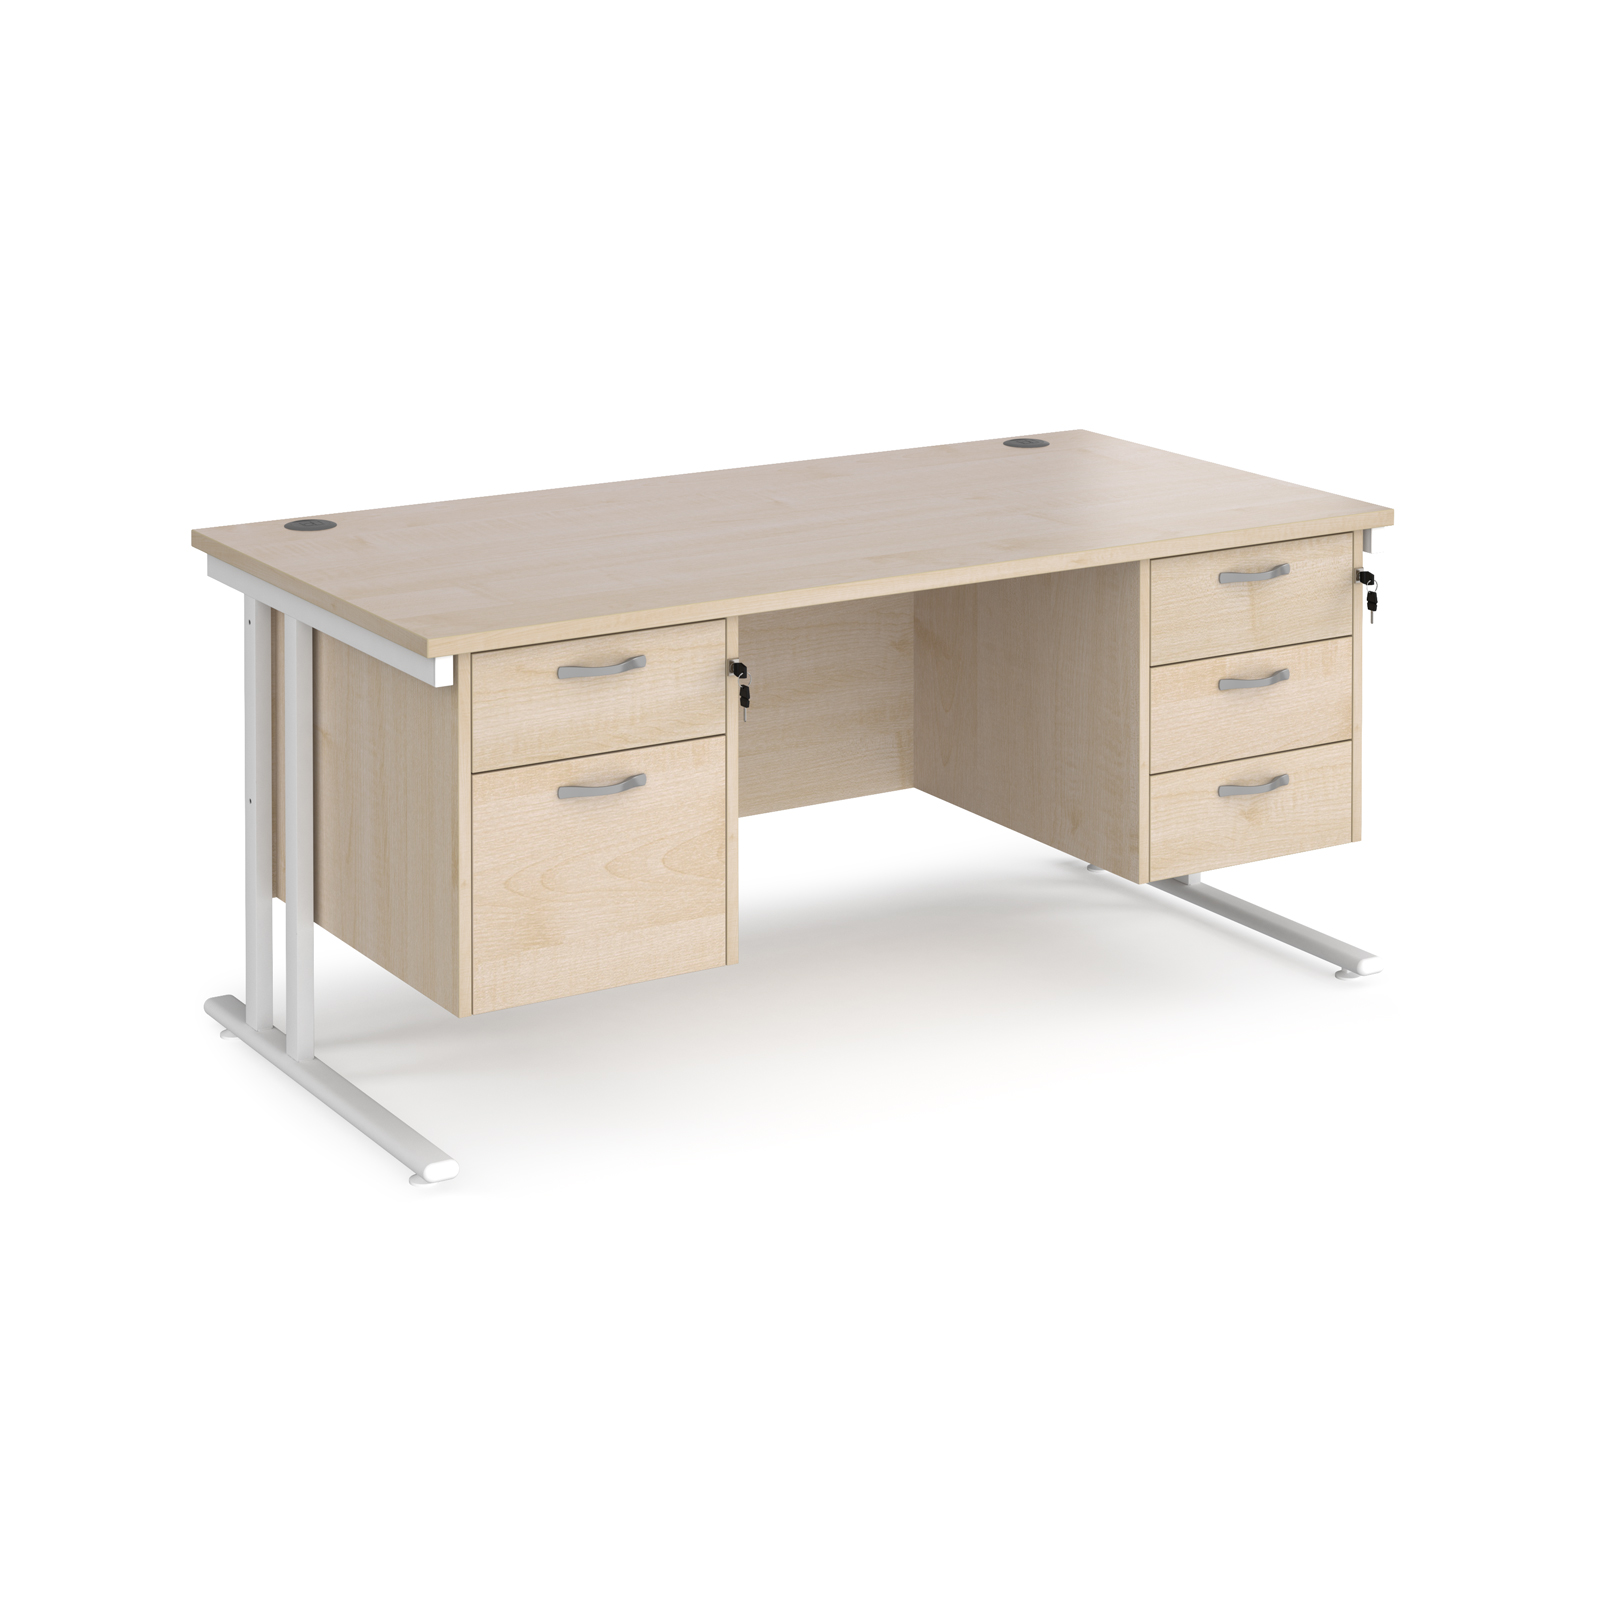 Maestro 25 straight desk 1600mm x 800mm with 2 and 3 drawer pedestals - white cantilever leg frame, maple top